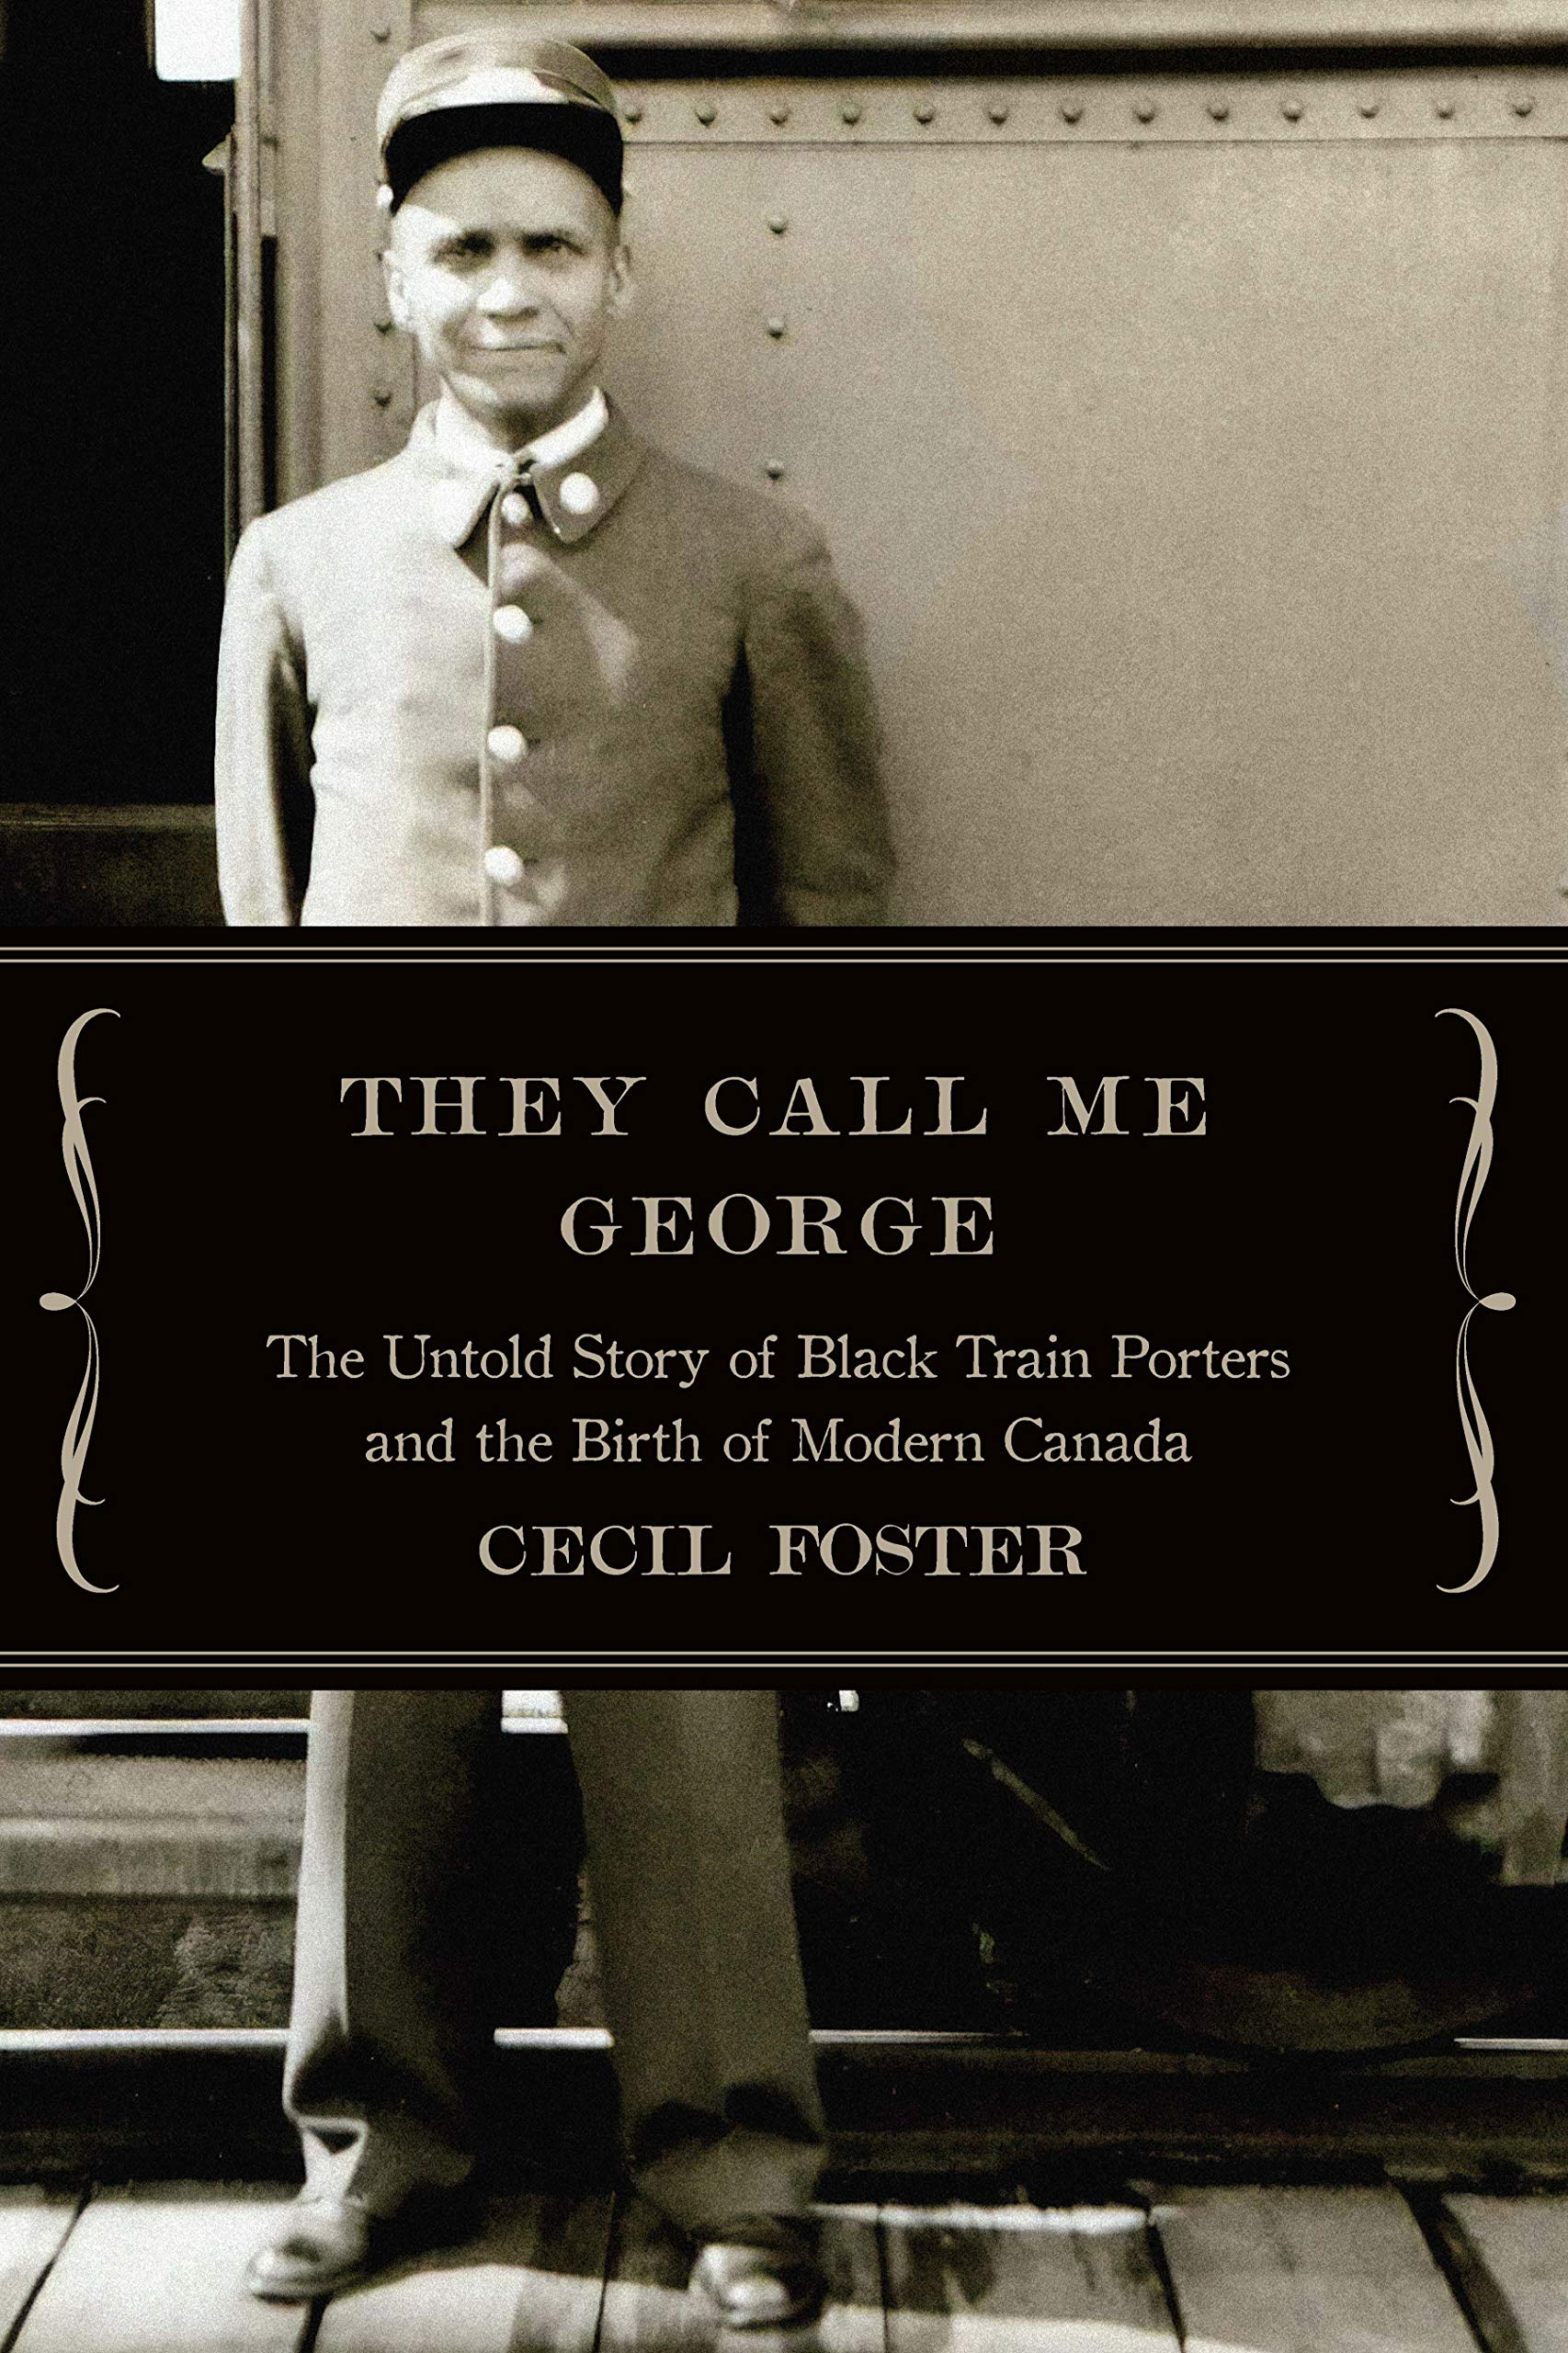 They Call Me George: The Untold Story of The Black Train Porters